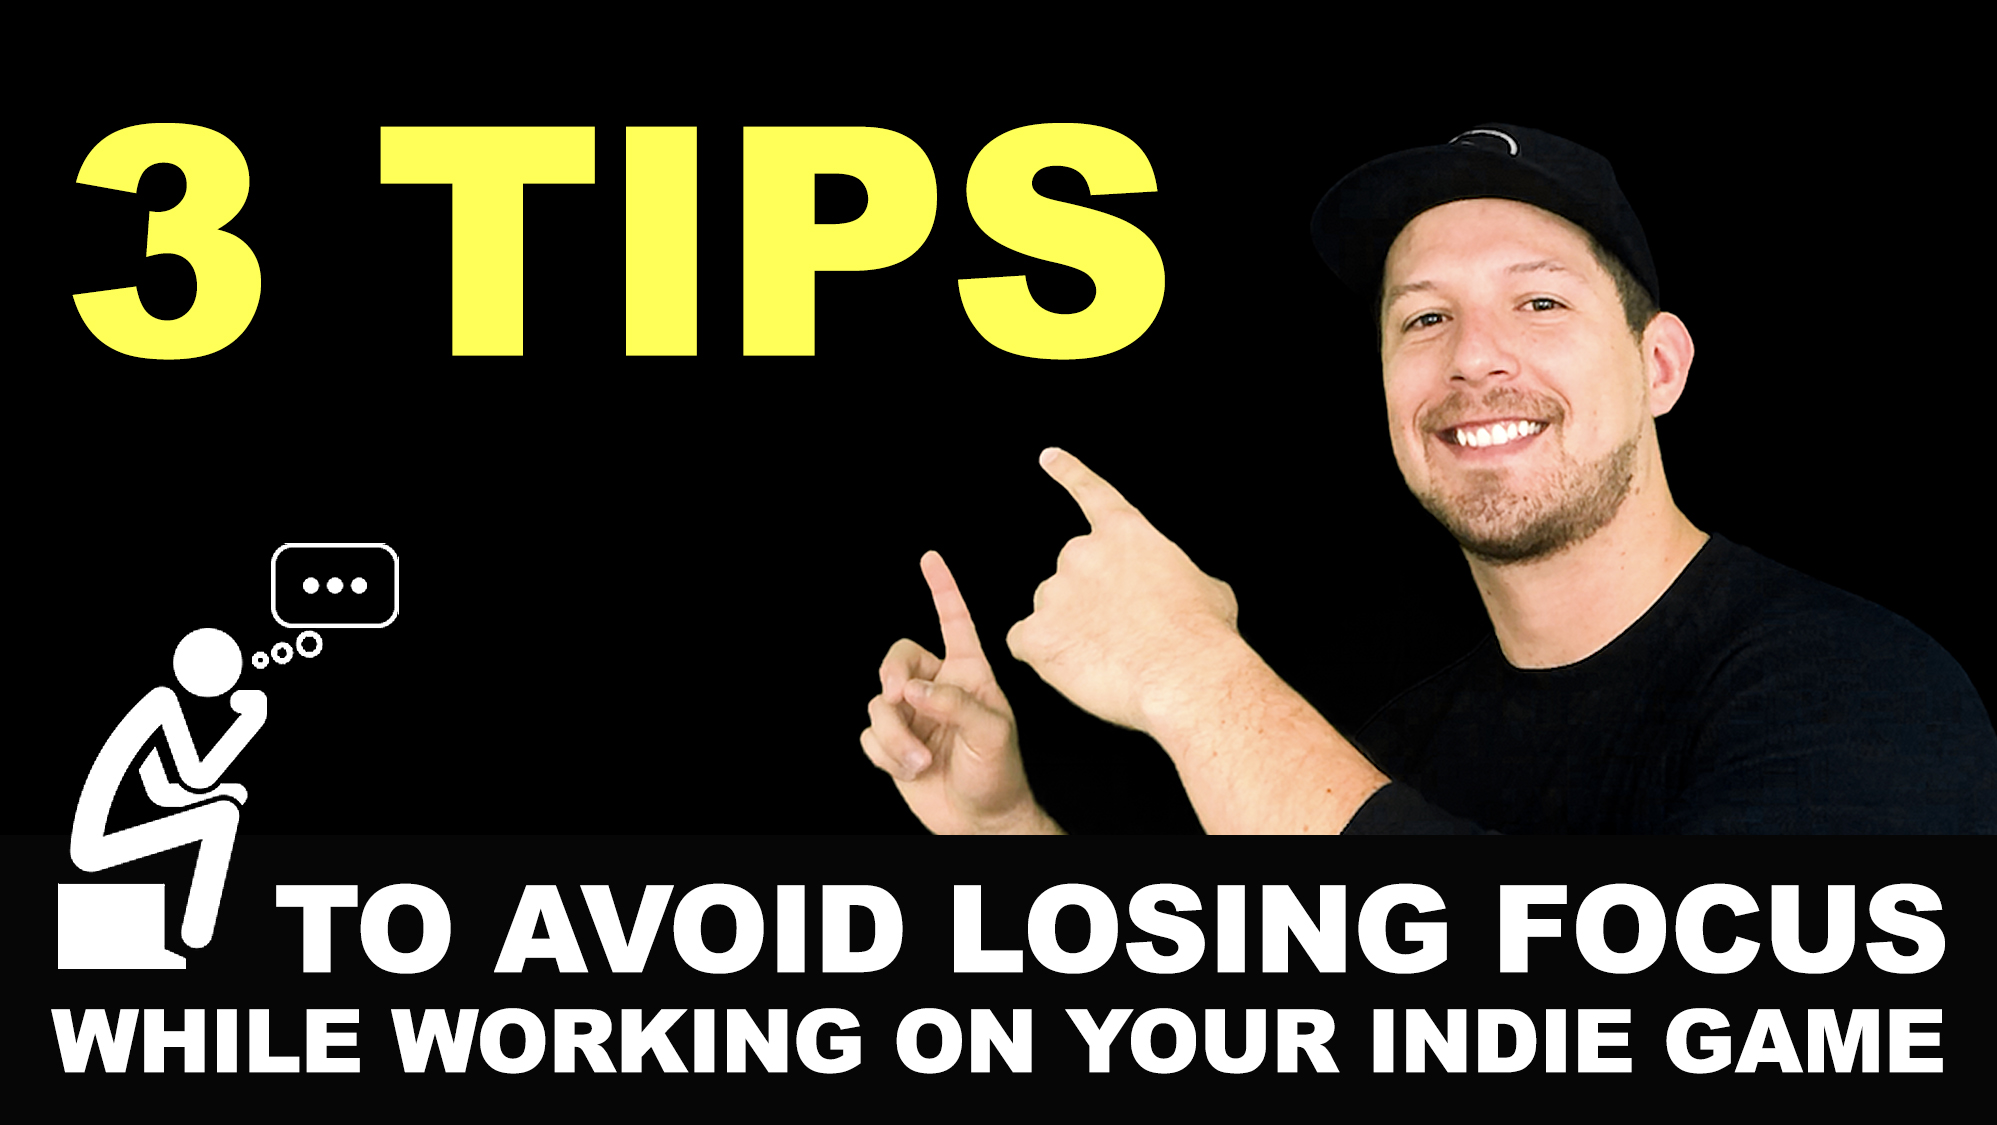 3 tips to avoid losing focus while working on your indie game